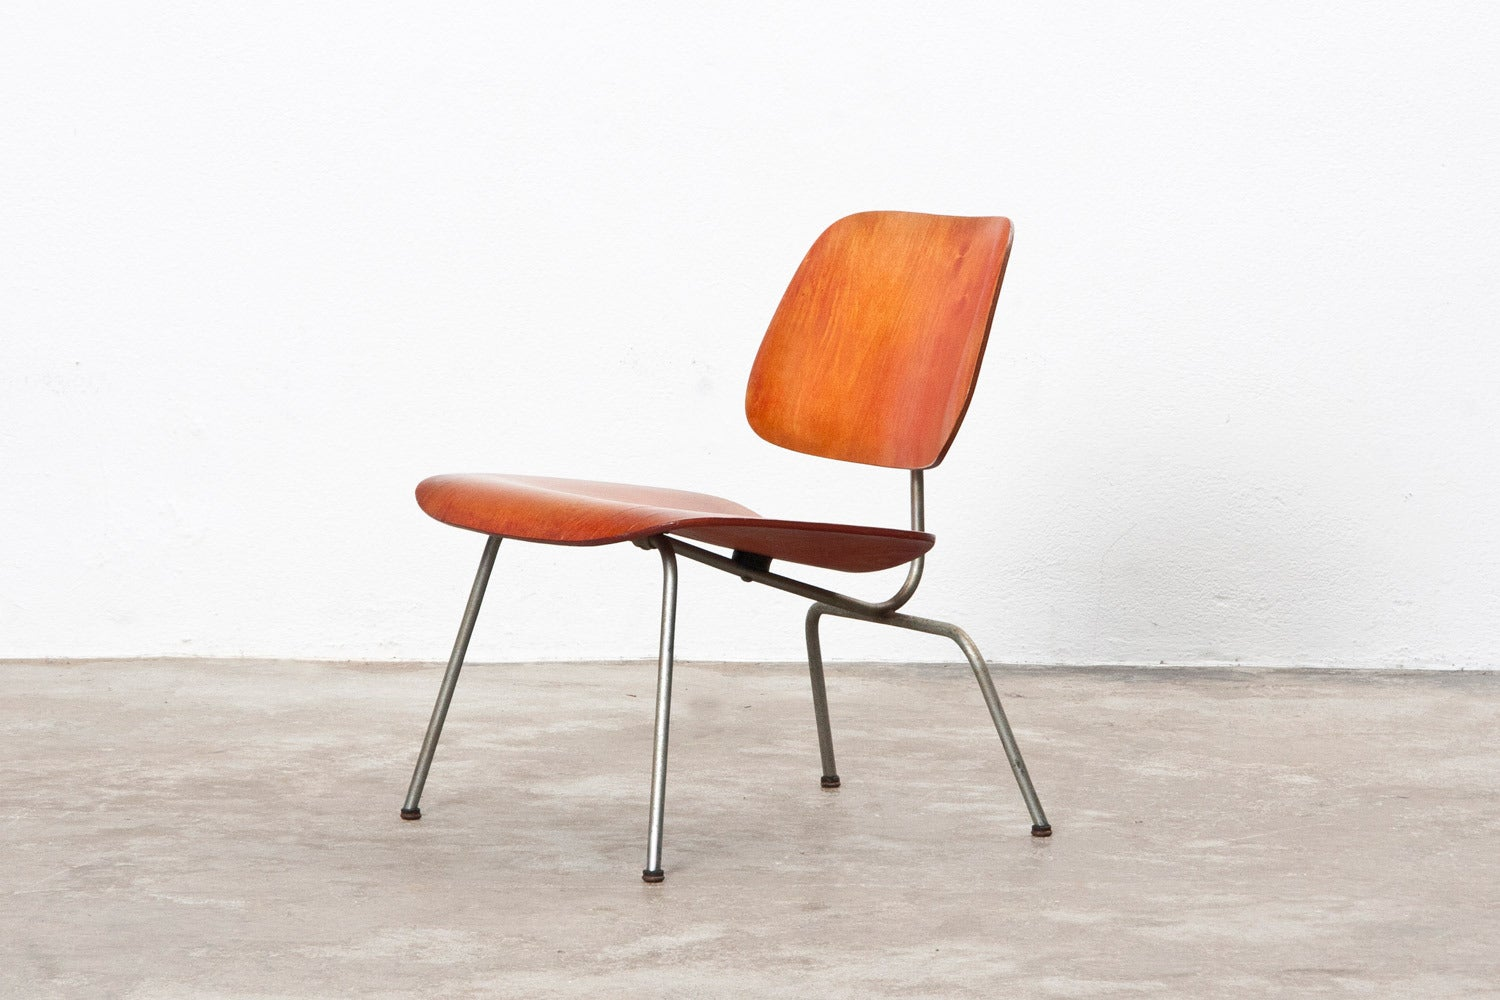 1940 S Red Analine Lcm Chair By Charles And Ray Eames For Sale At